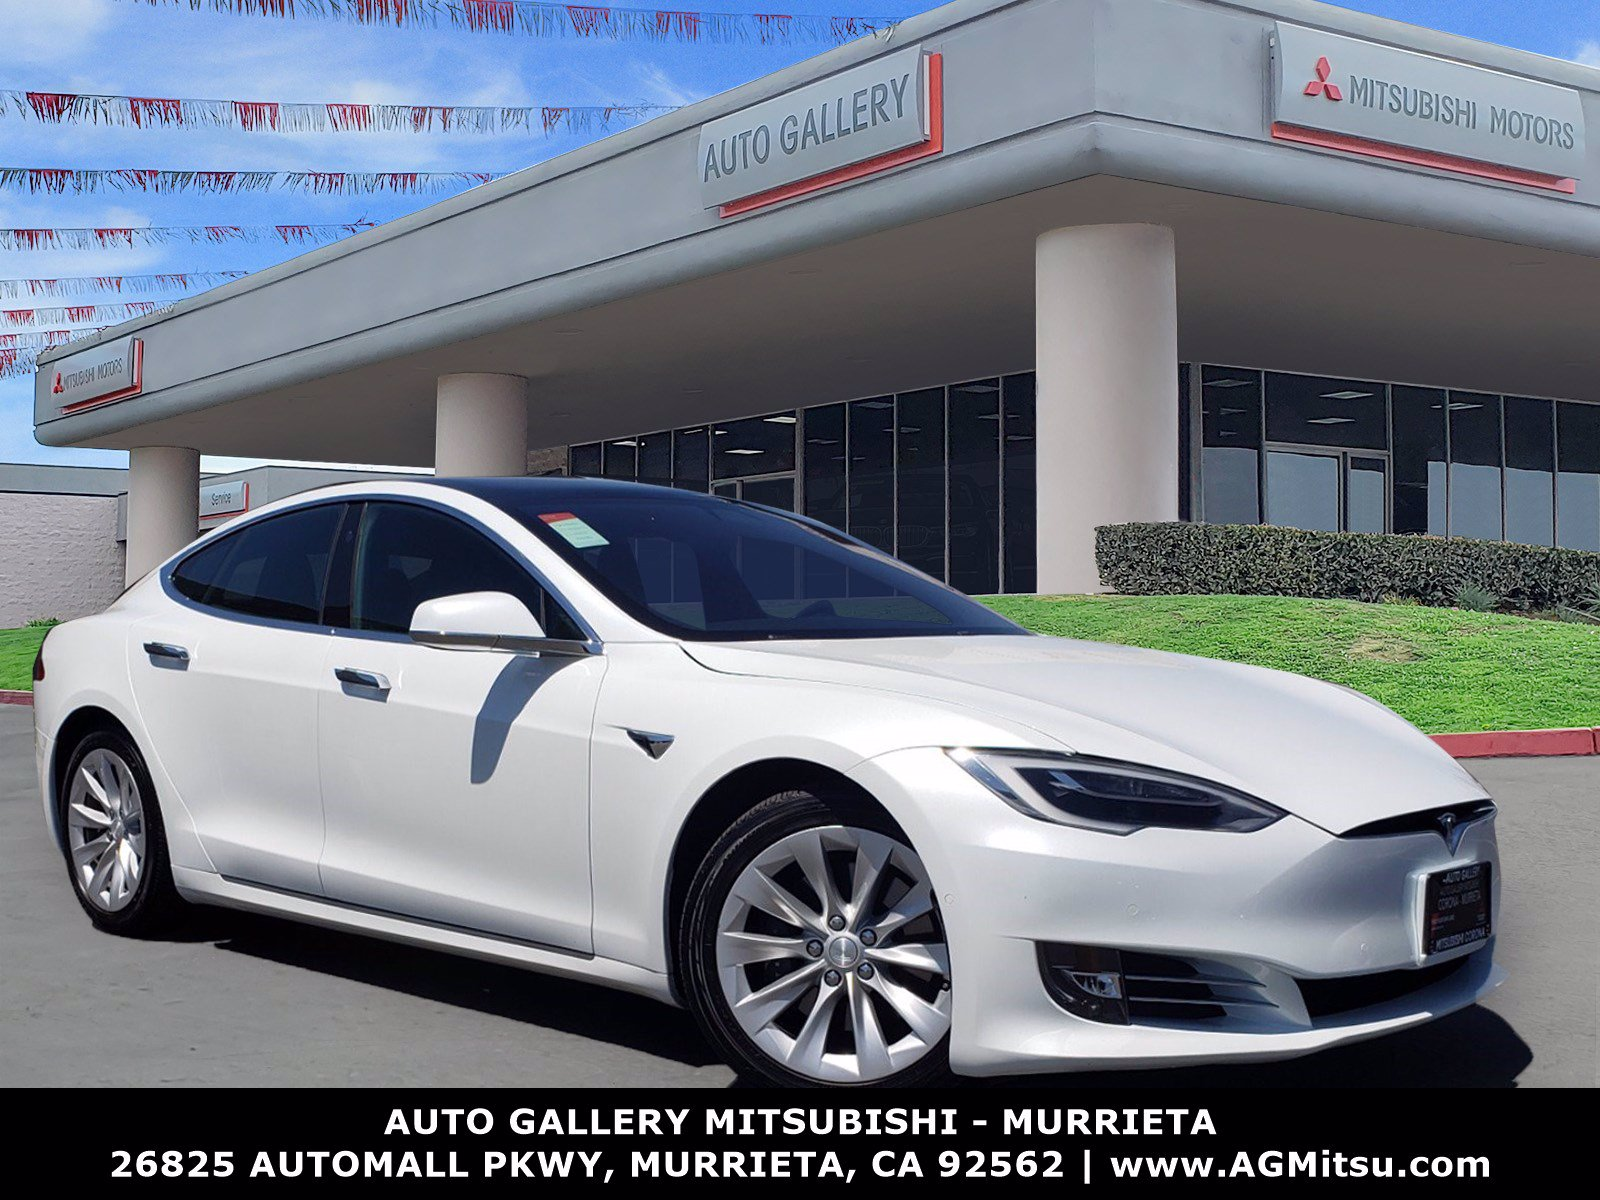 Used Tesla Model S Murrieta Ca